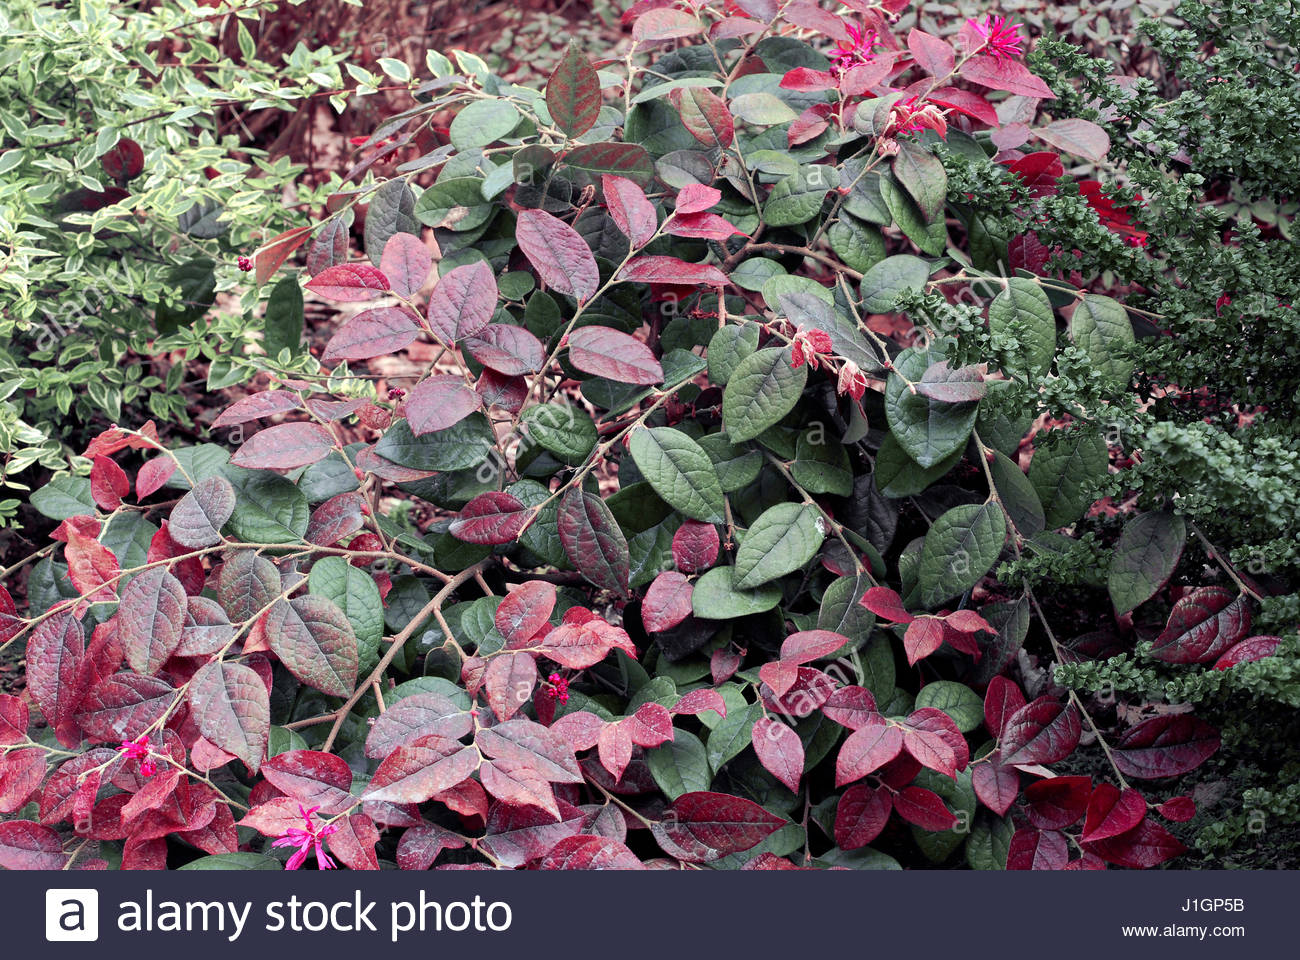 Loropetalum Purple Majesty